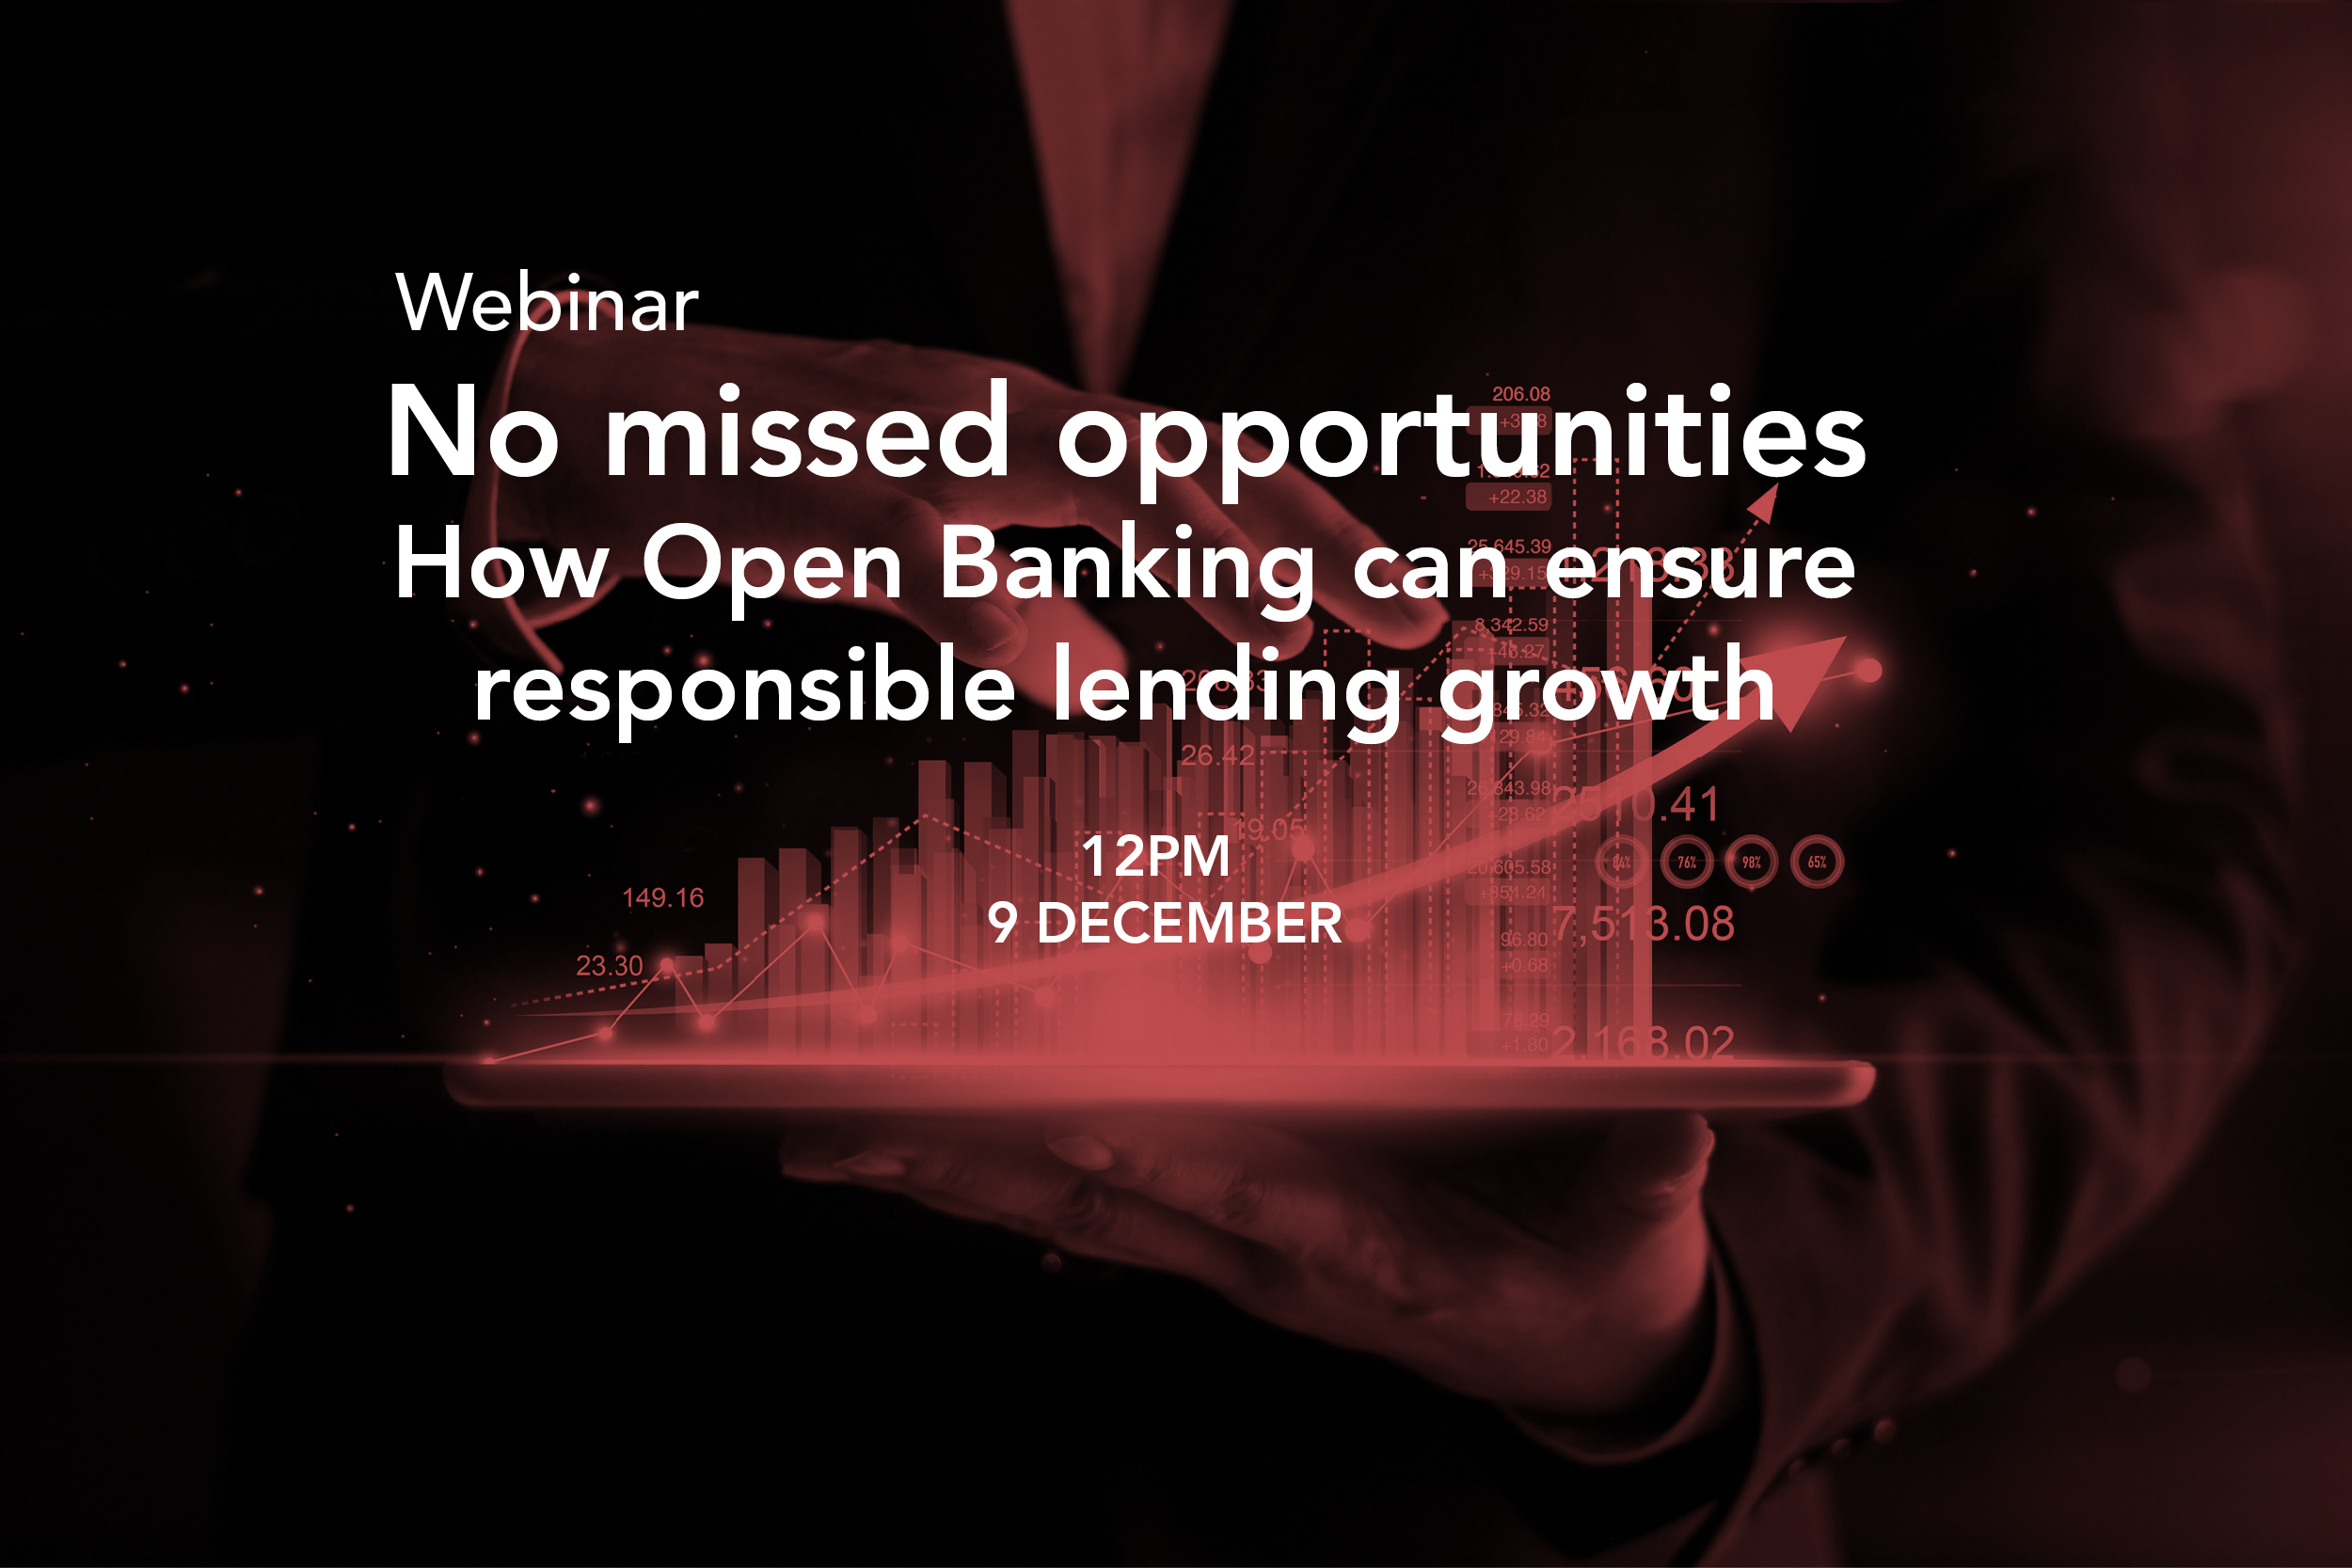 No missed opportunities - How Open Banking can ensure responsible lending growth